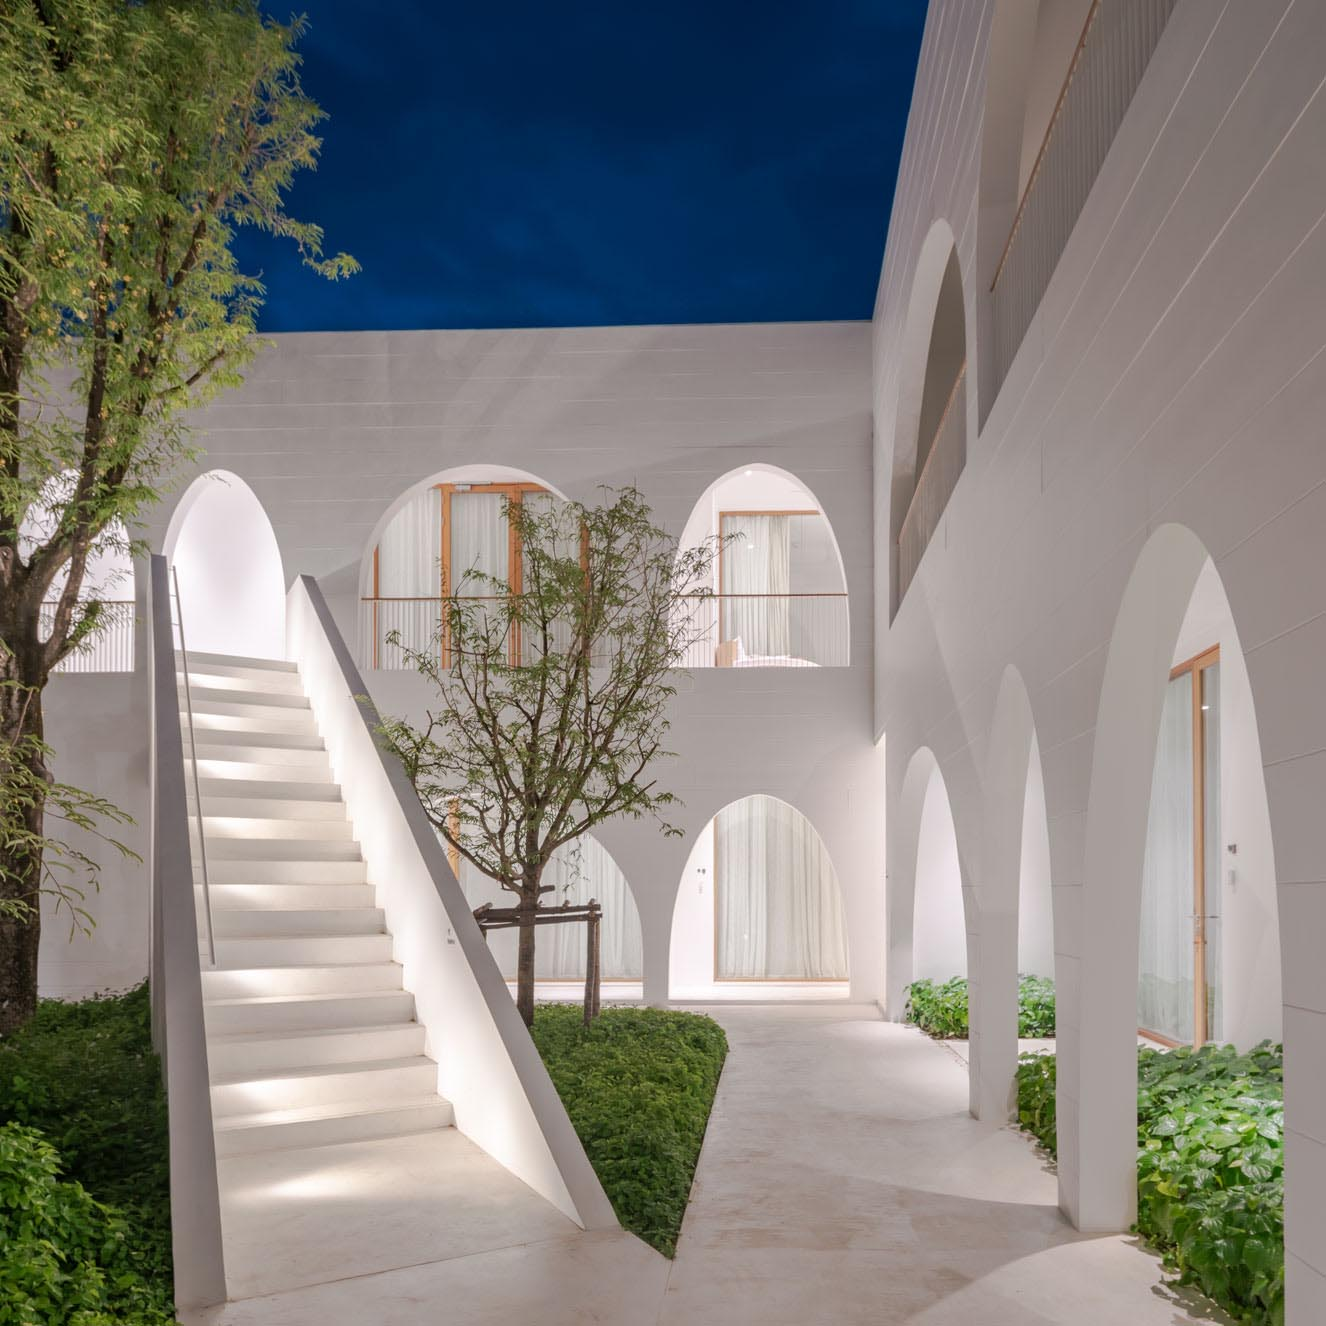 A modern hotel with arches and white stairs with lighting.